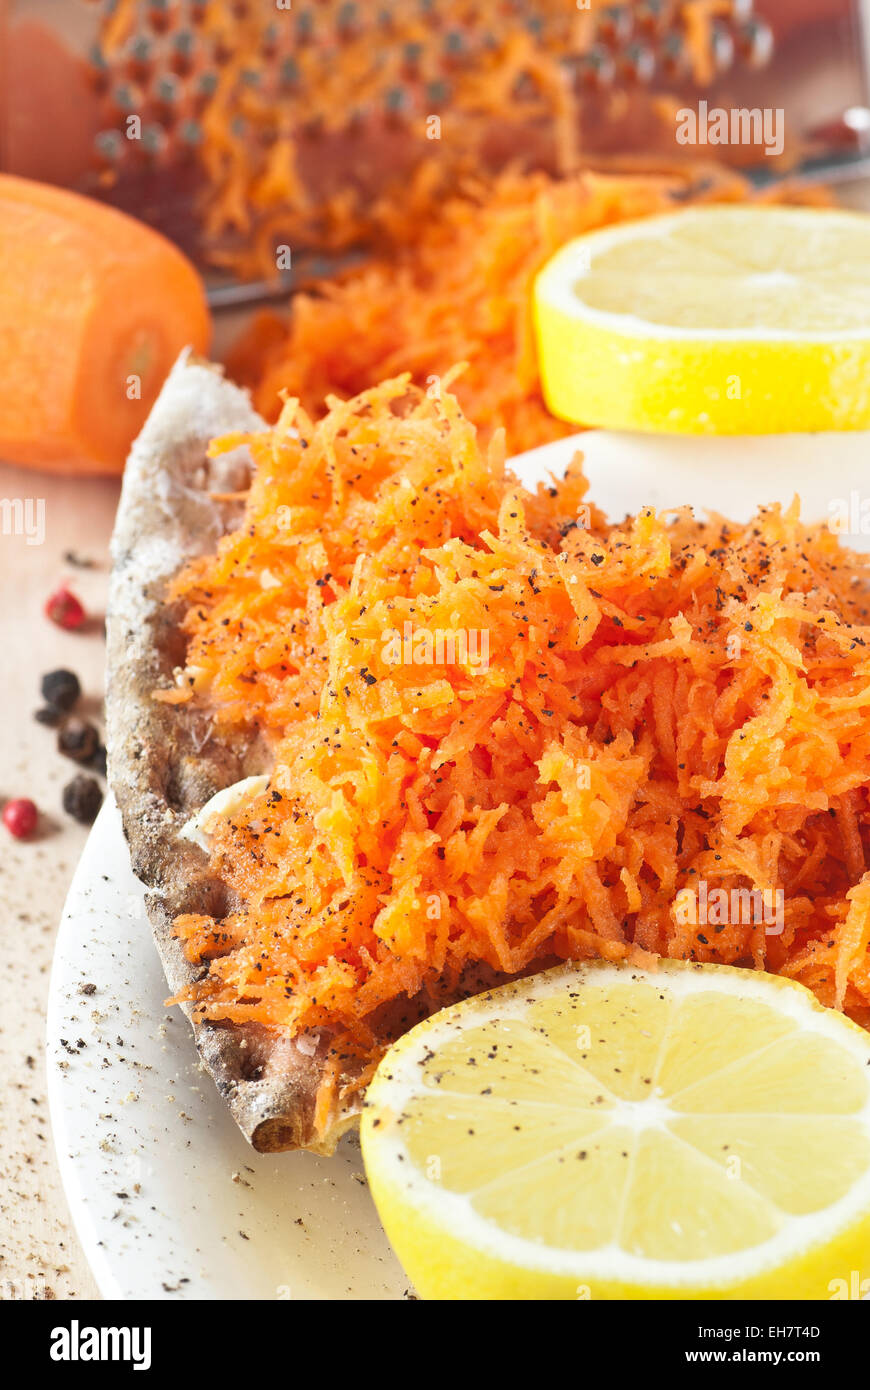 Crispbread with grated carrot.  Seasoned with lemon and black pepper. - Stock Image